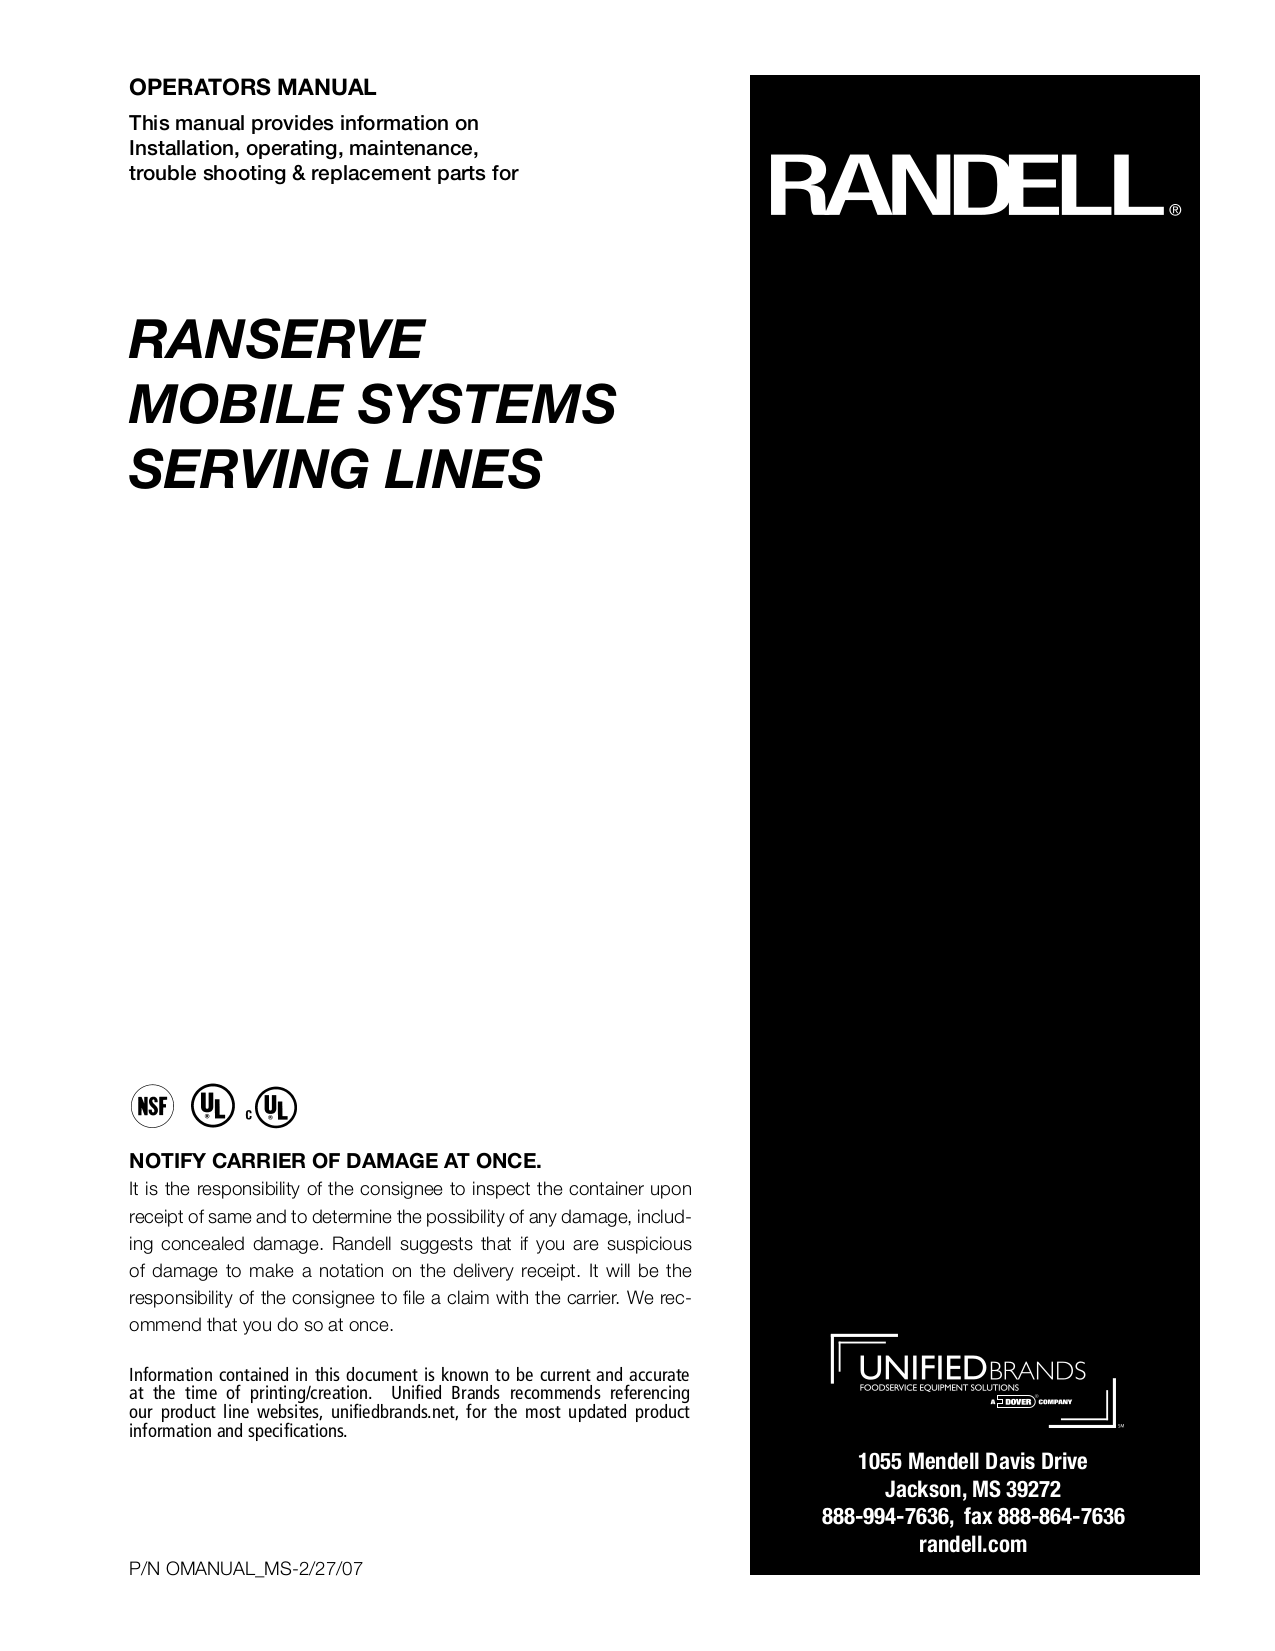 pdf for Randell Other RANFG HTD-4B Food Holding Units manual